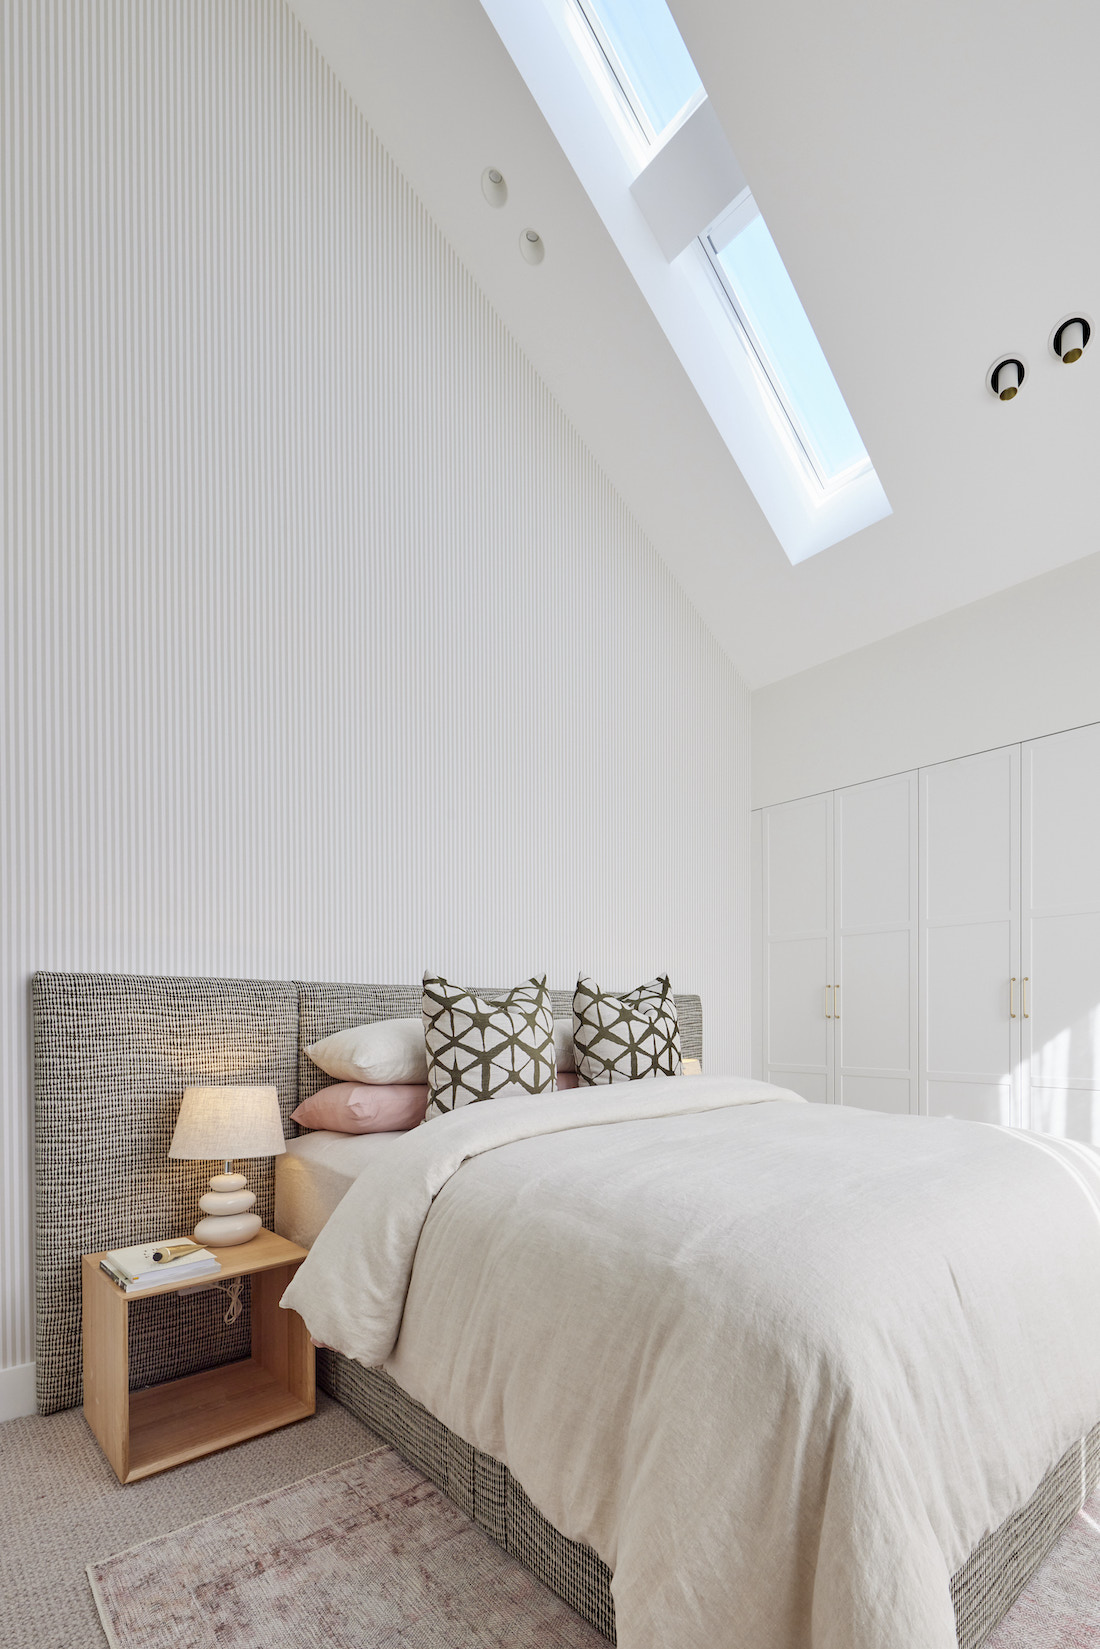 Bedroom with fabric bedhead and skylights